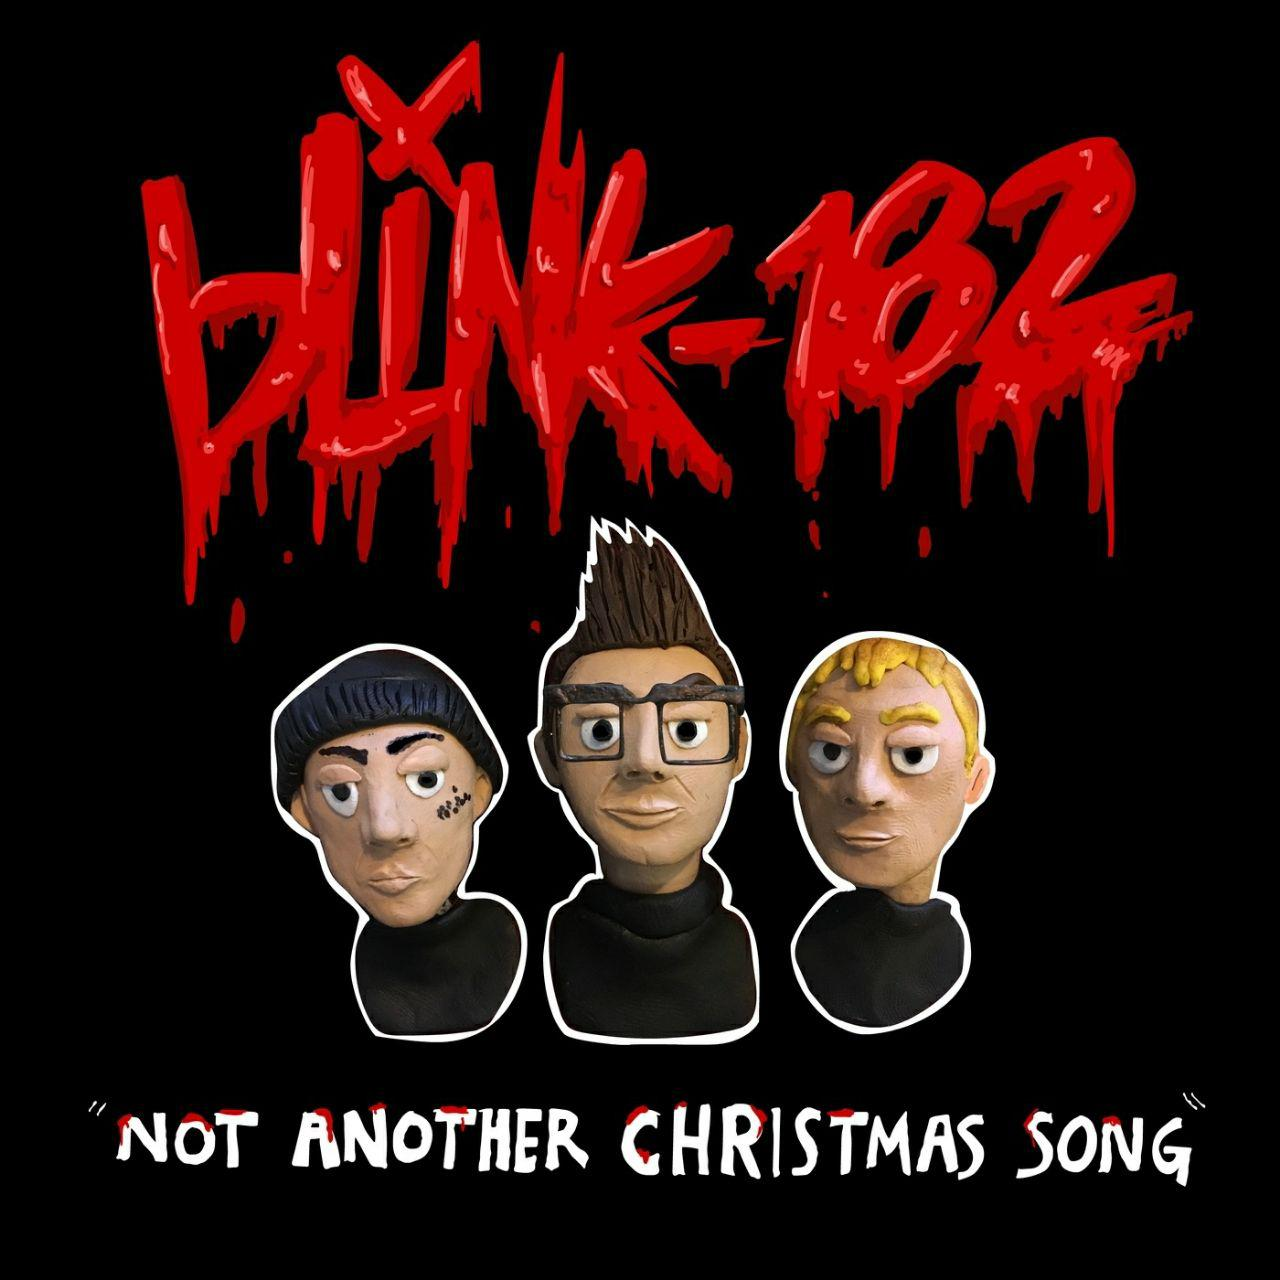 blink-182 - Not Another Christmas Song (Single)